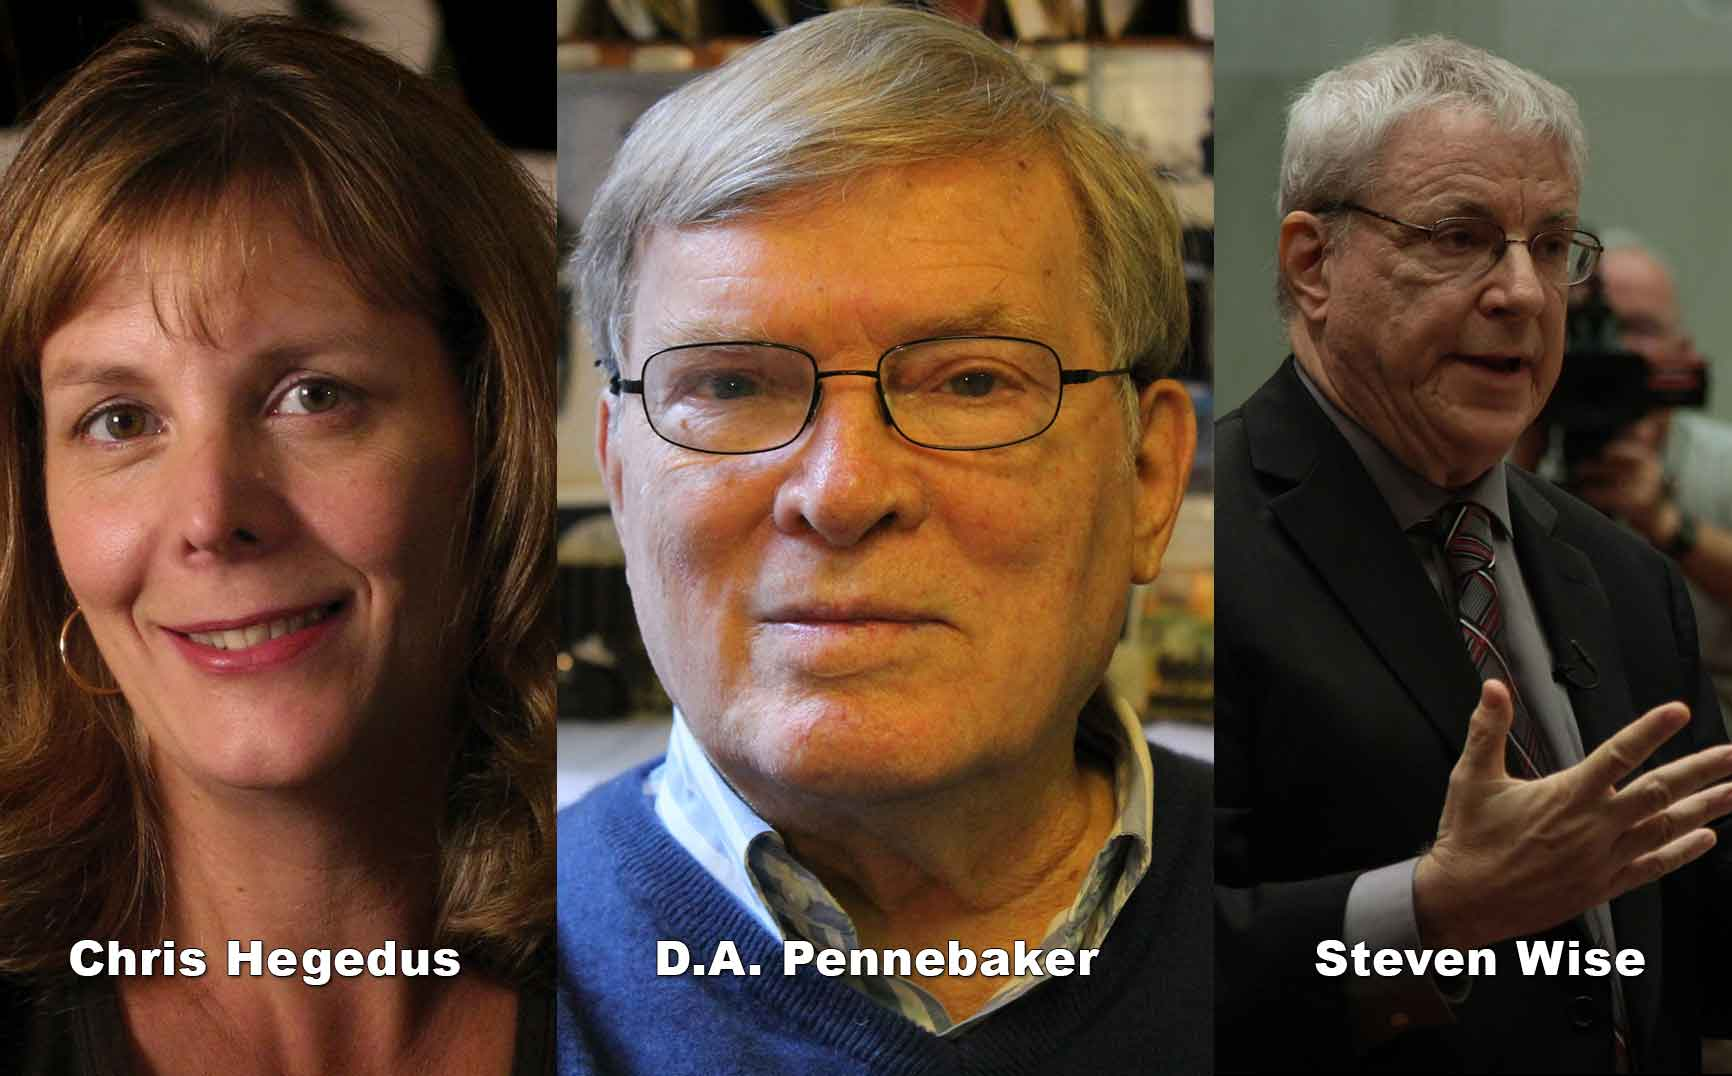 UNLOCKING THE CAGE Filmmakers Chris Hegedus & D.A. Pennebaker with Subject Steven Wise